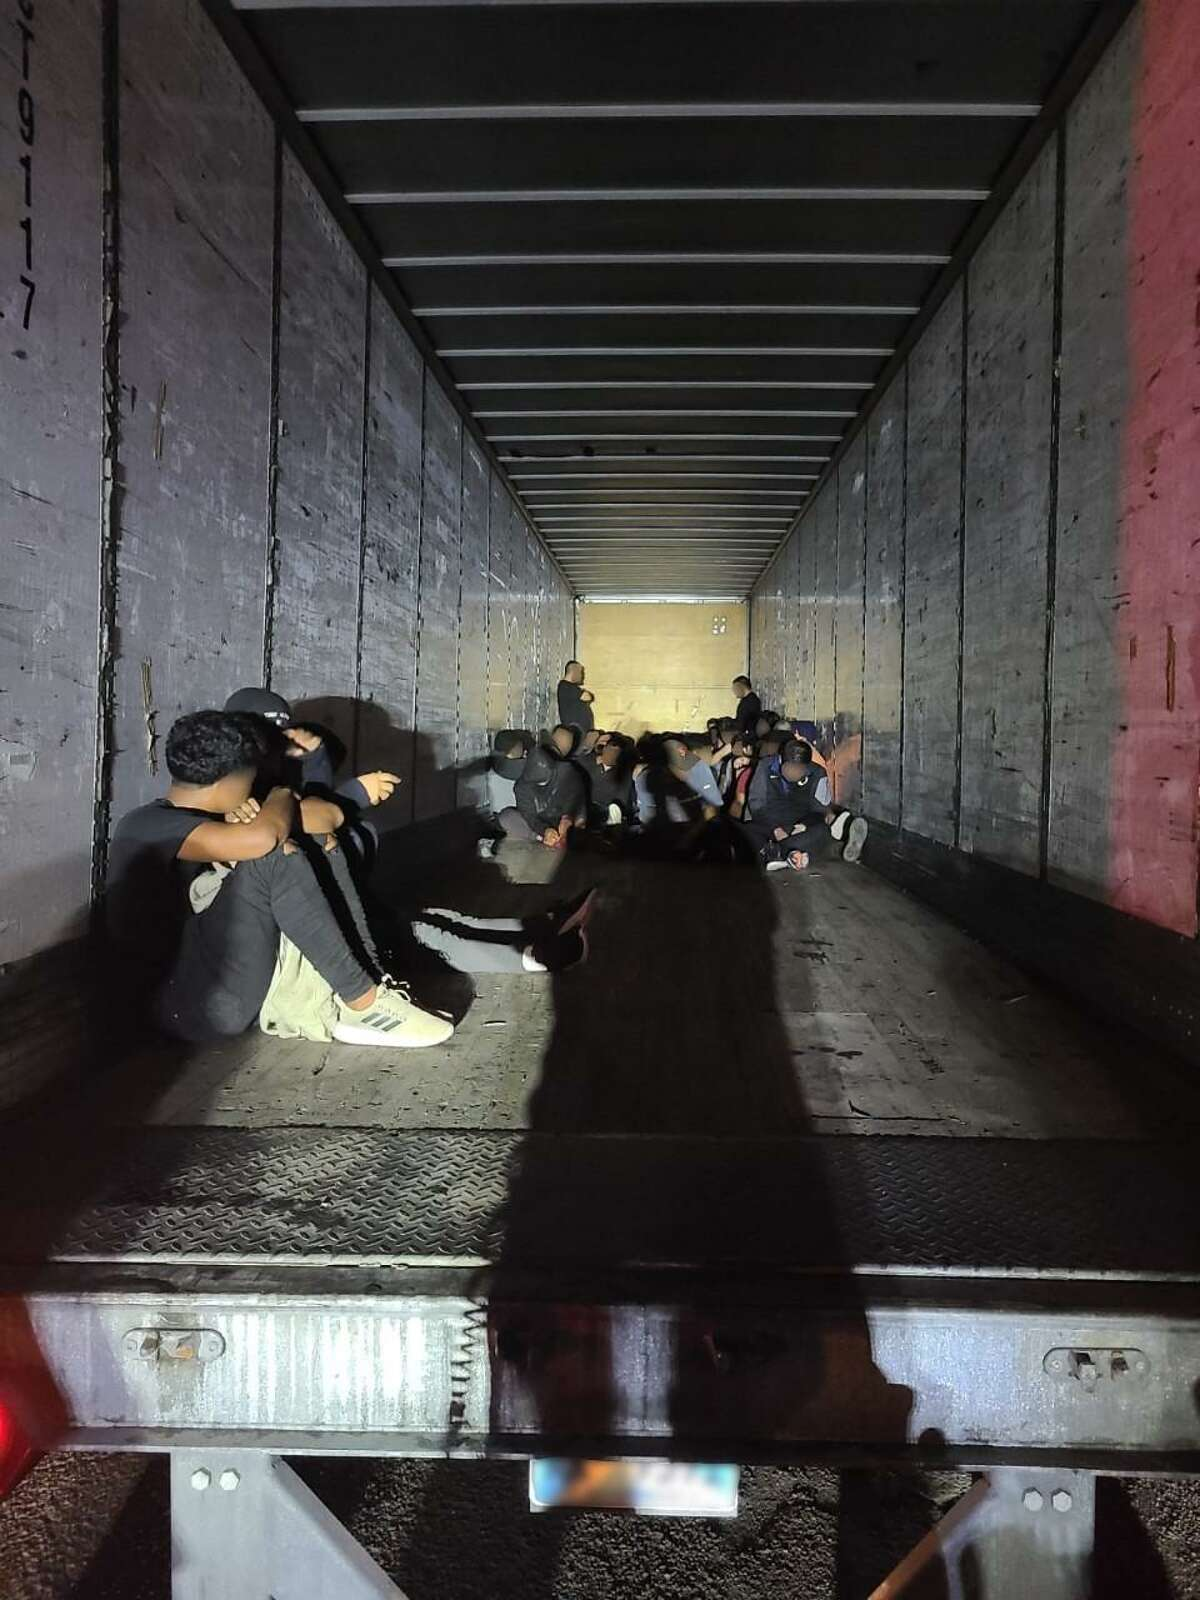 Laredo police officers discovered 67 people inside an abandoned locked trailer. U.S. Border Patrol determined that all were immigrants who were in the country illegally.